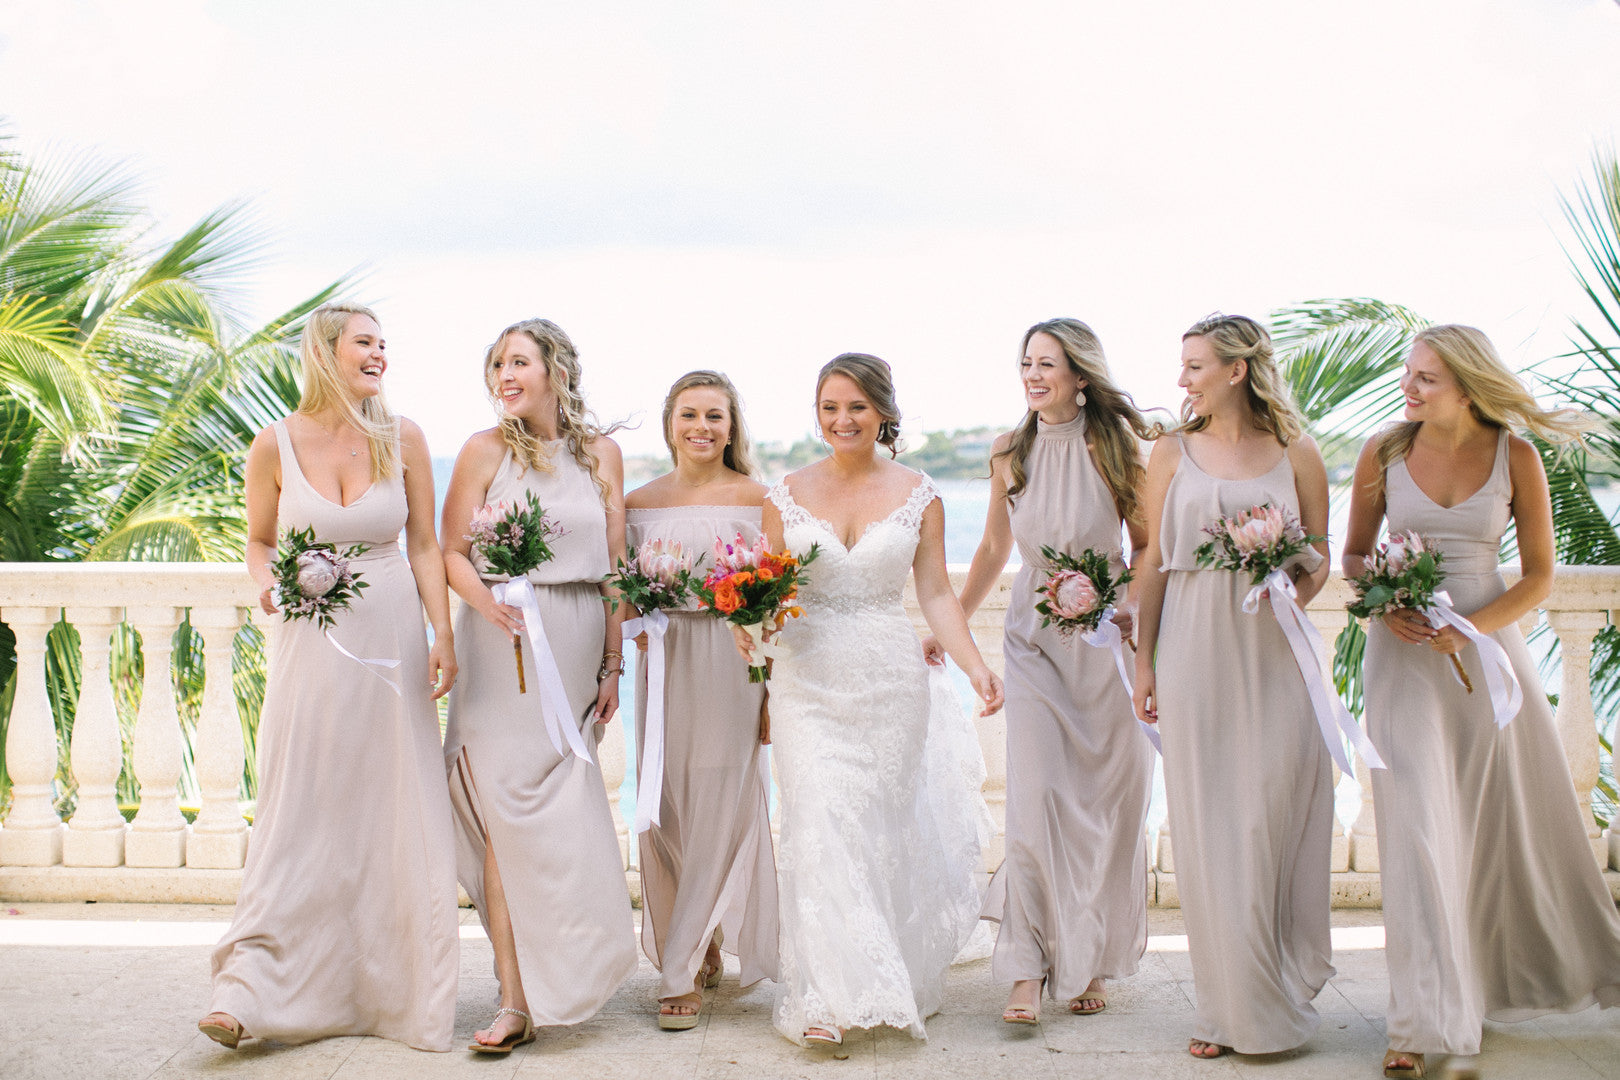 Bride and Bridesmaids | A Dreamy Destination Wedding at St. Thomas | Kate Aspen